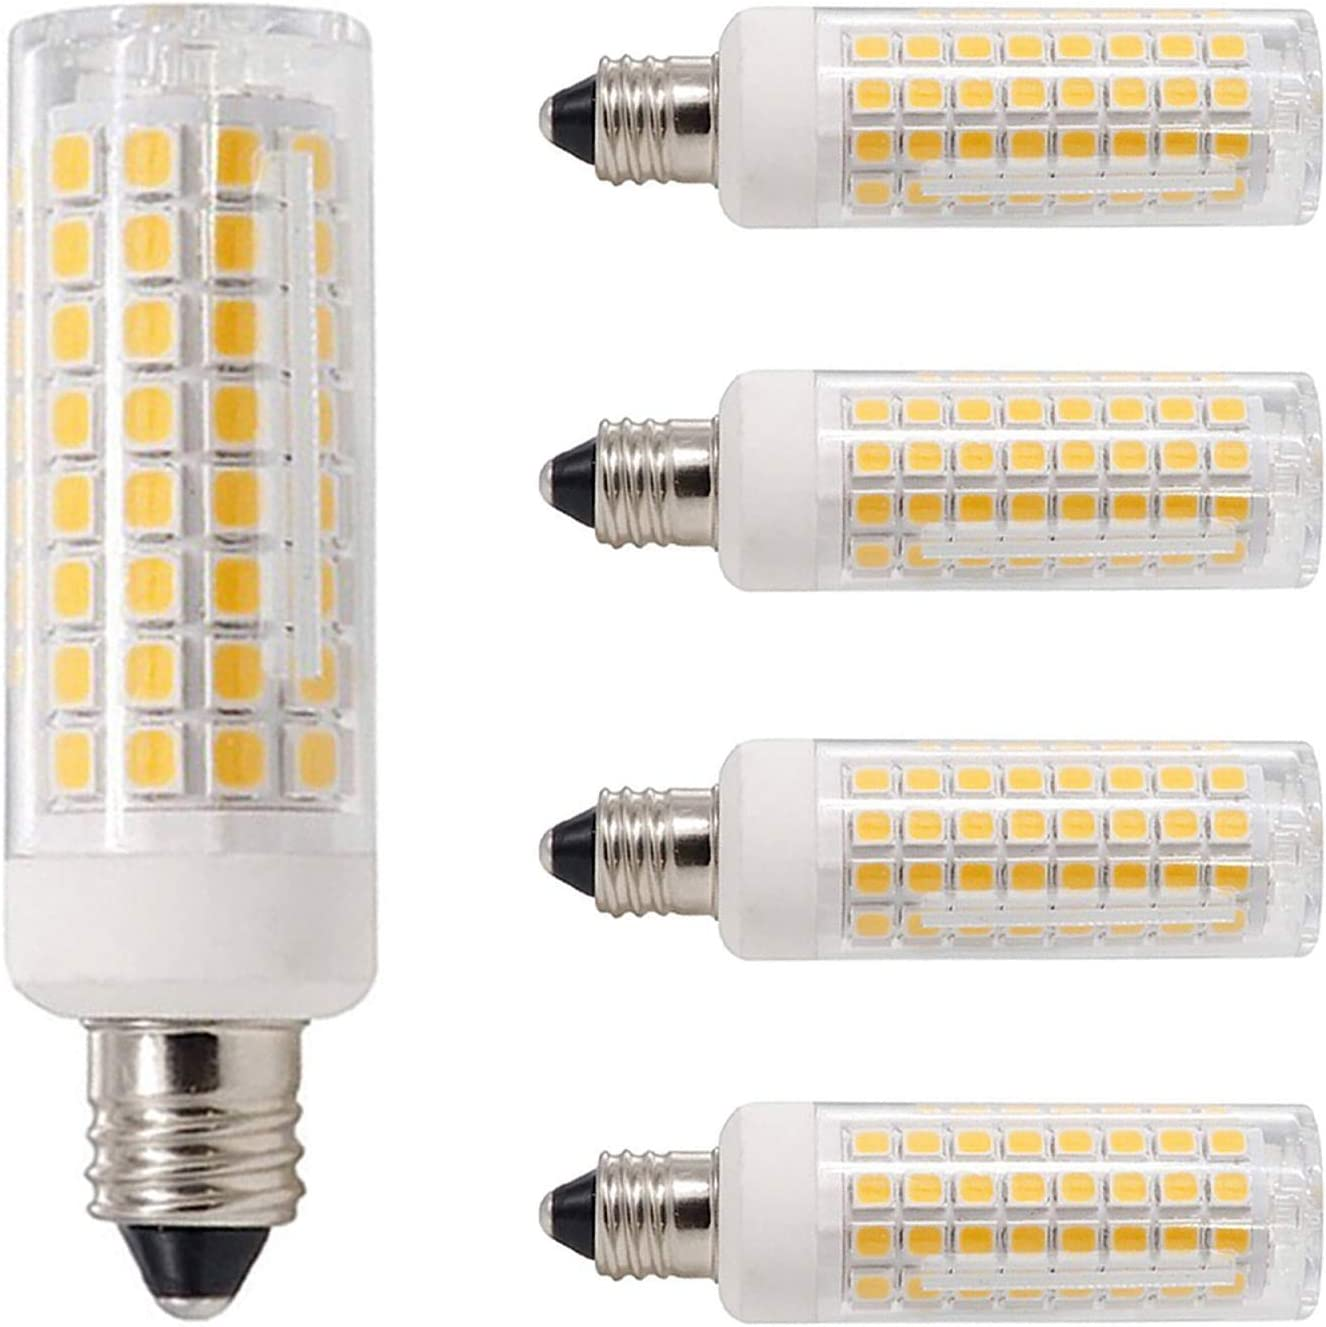 AC110V// 120V// 130V Replaces T4 //T3 JD e11,Pack of 4 Dimmable 850 Lumens Warm White 3000K Mini Candelabra Base 80W or 100W Equivalent Halogen Replacement Lights E11 Led Bulbs All-New- 102LEDs